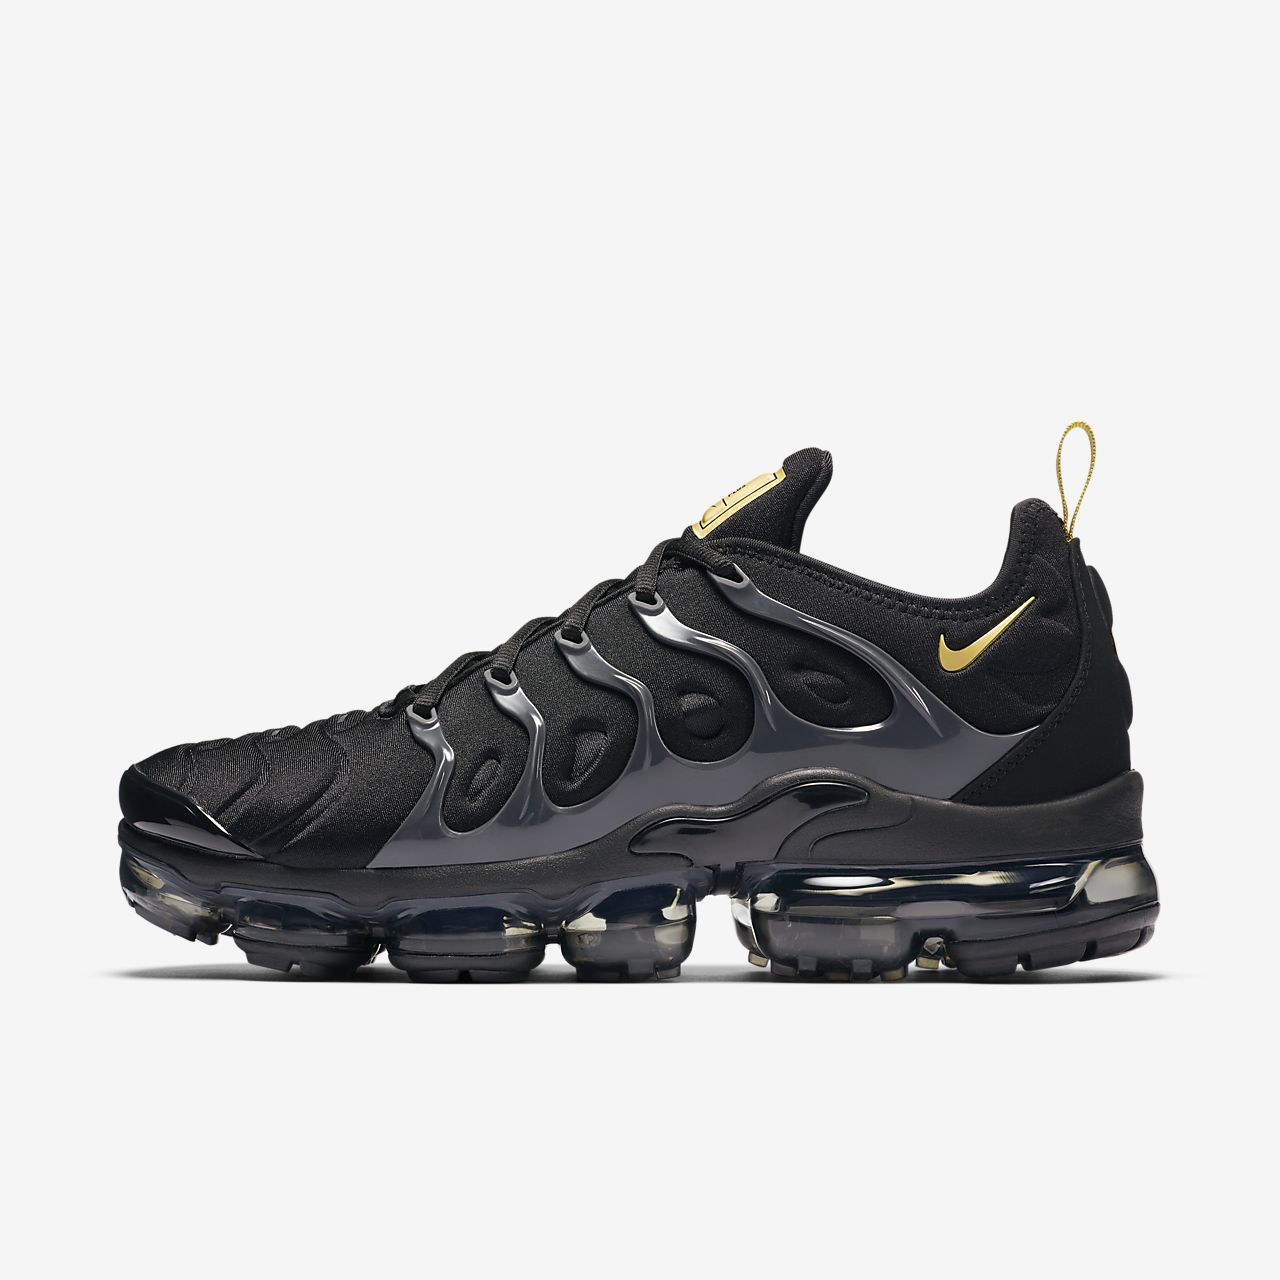 sneakers for cheap 470b3 bd687 ... Chaussure Nike Air VaporMax Plus pour Homme